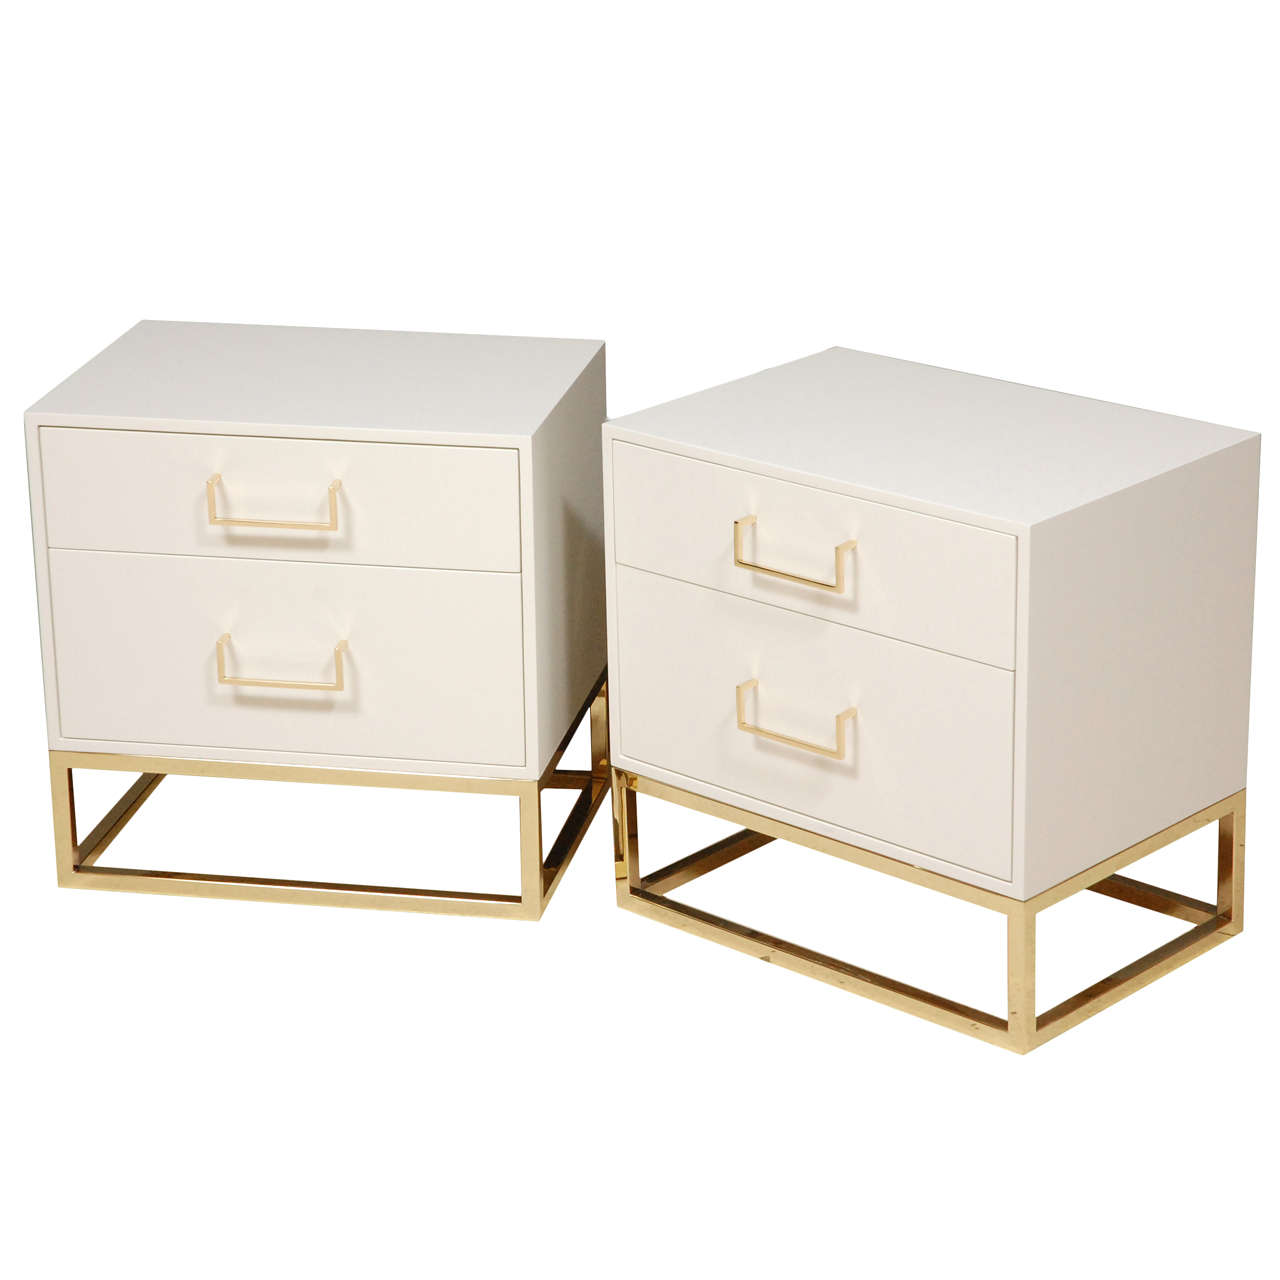 Madison Nightstands With Brass Base By Lawson Fenning At